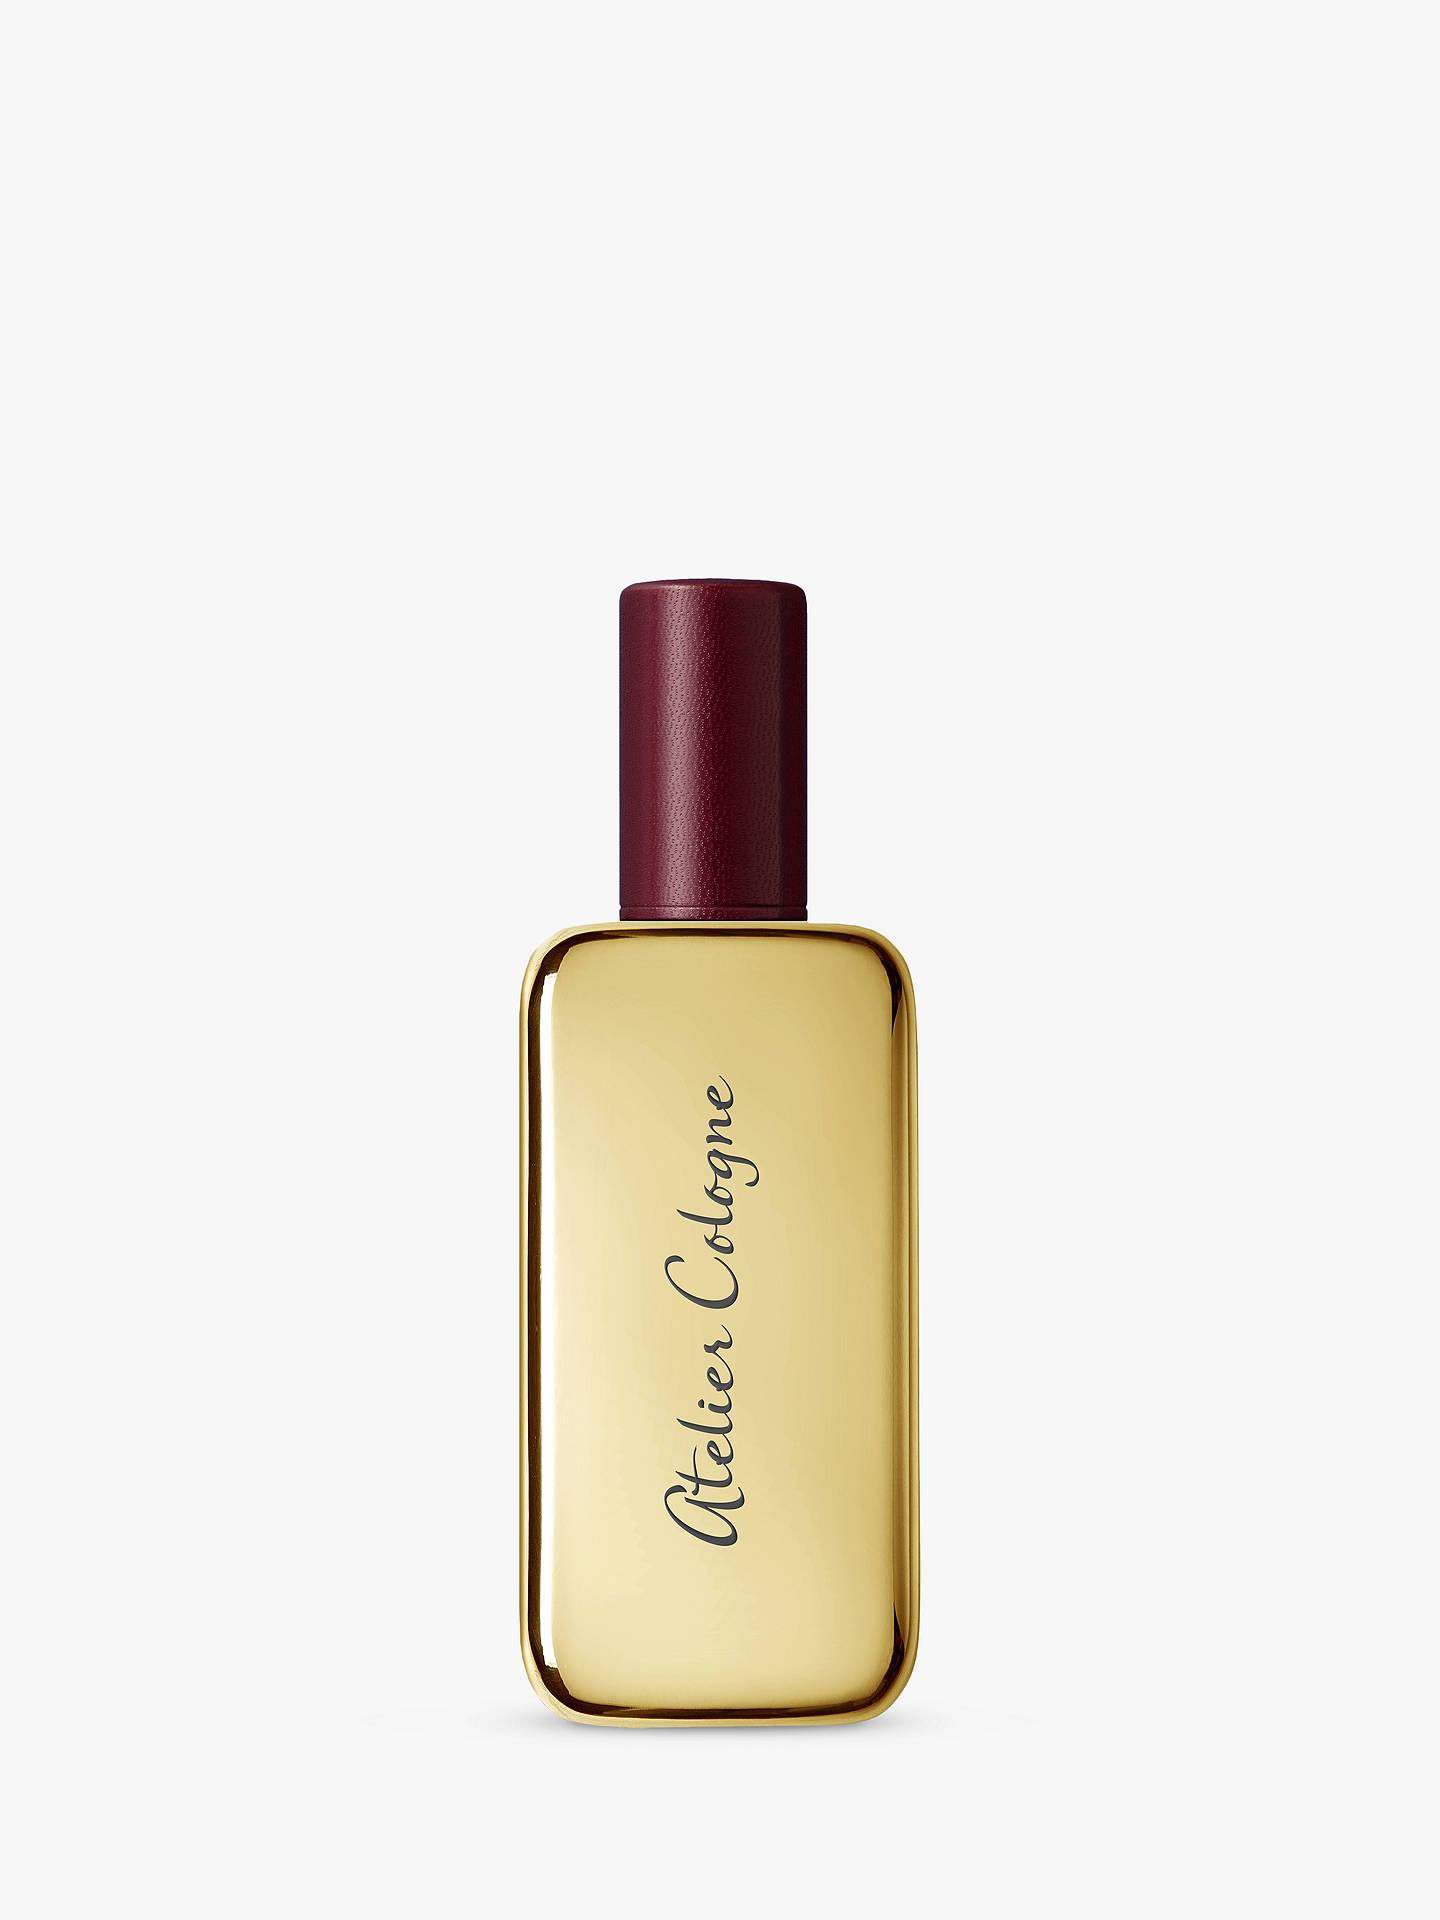 Buy Atelier Cologne Emeraude Agar Cologne Absolue, 100ml Online at johnlewis.com